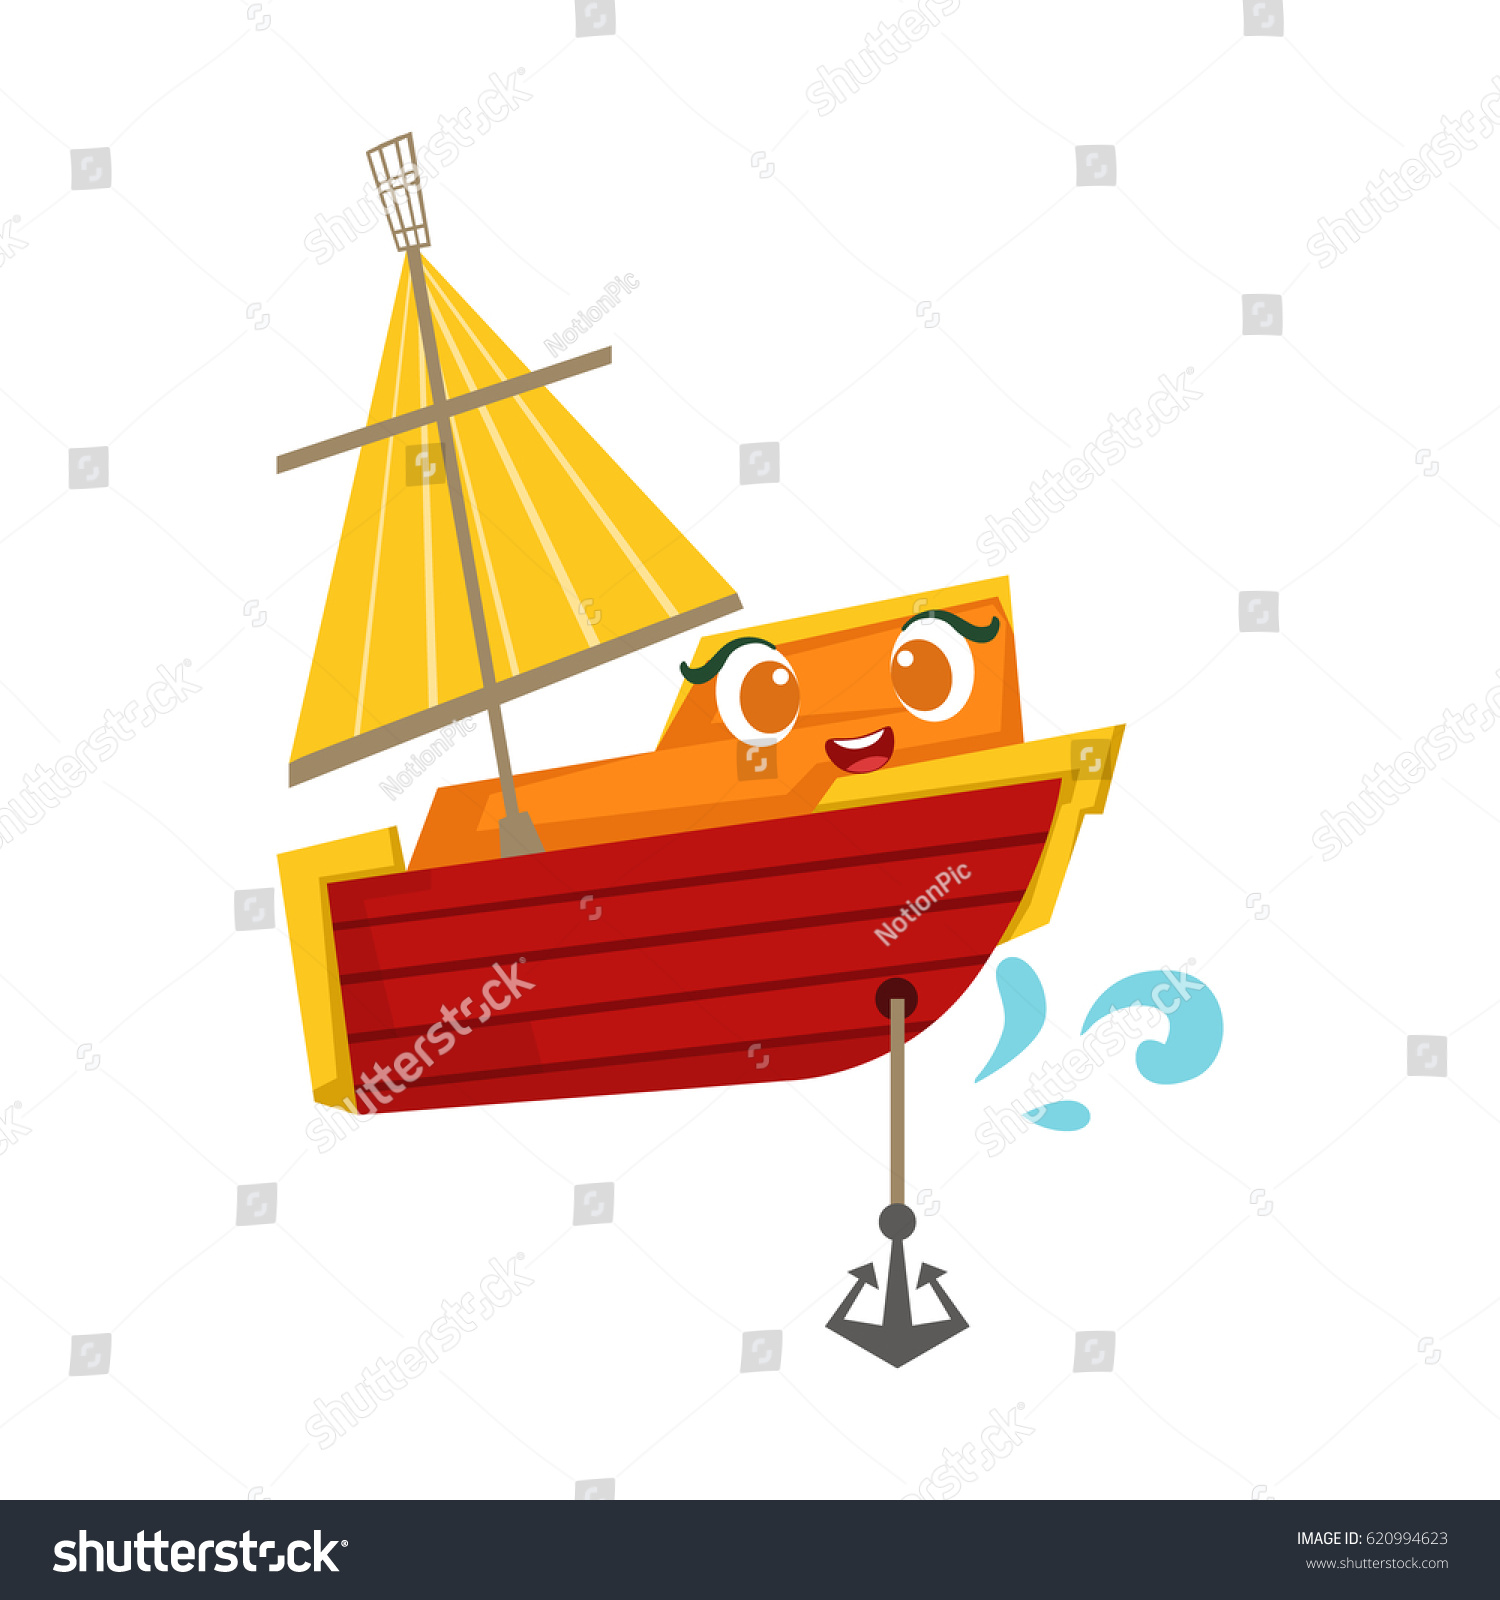 Orange Red Sailing Boat Anchor Cute Stock Vector 620994623 ...